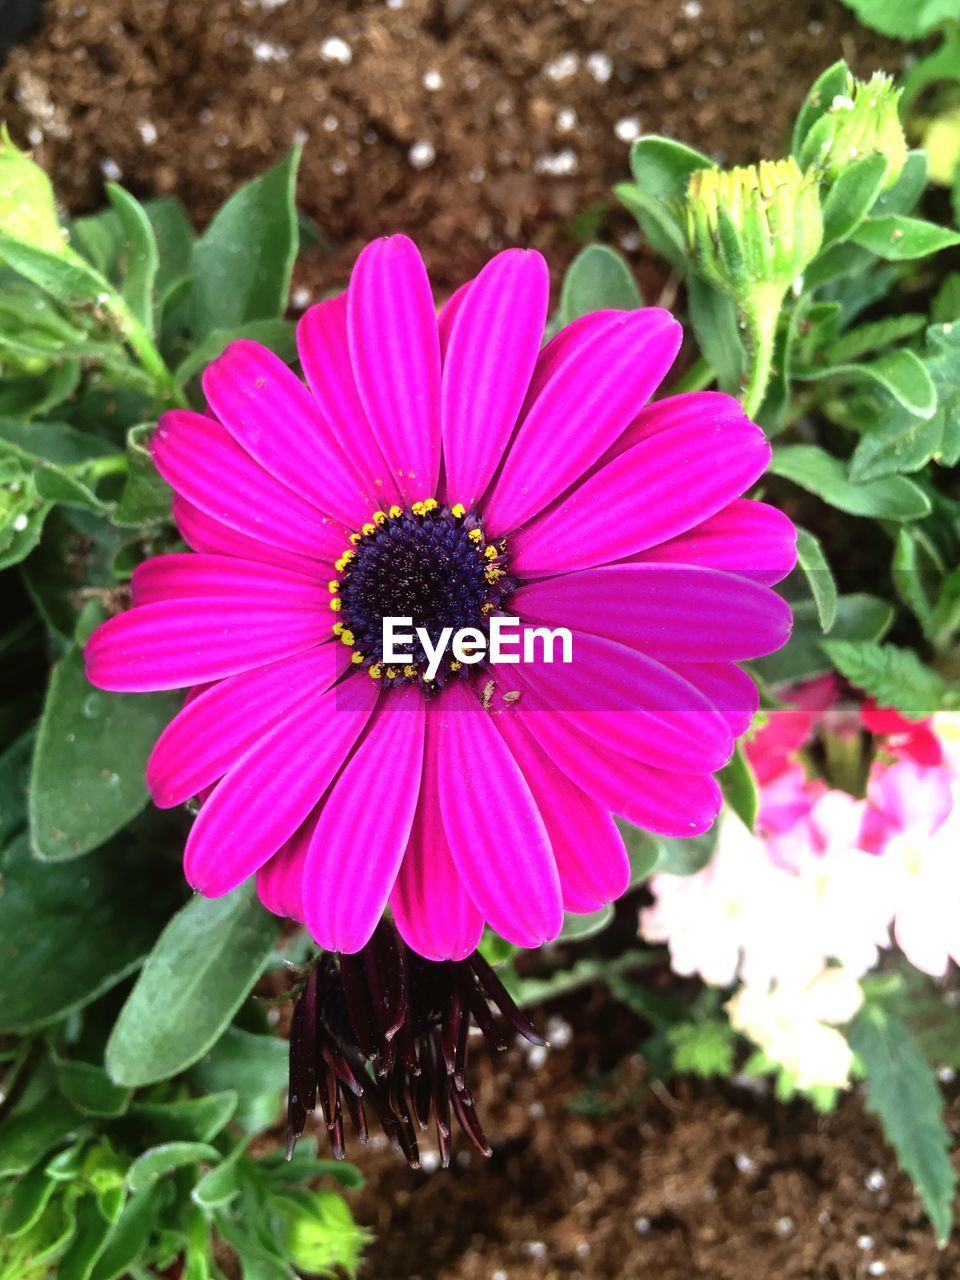 flower, fragility, petal, growth, freshness, plant, nature, blooming, flower head, pink color, pollen, beauty in nature, no people, outdoors, day, high angle view, osteospermum, close-up